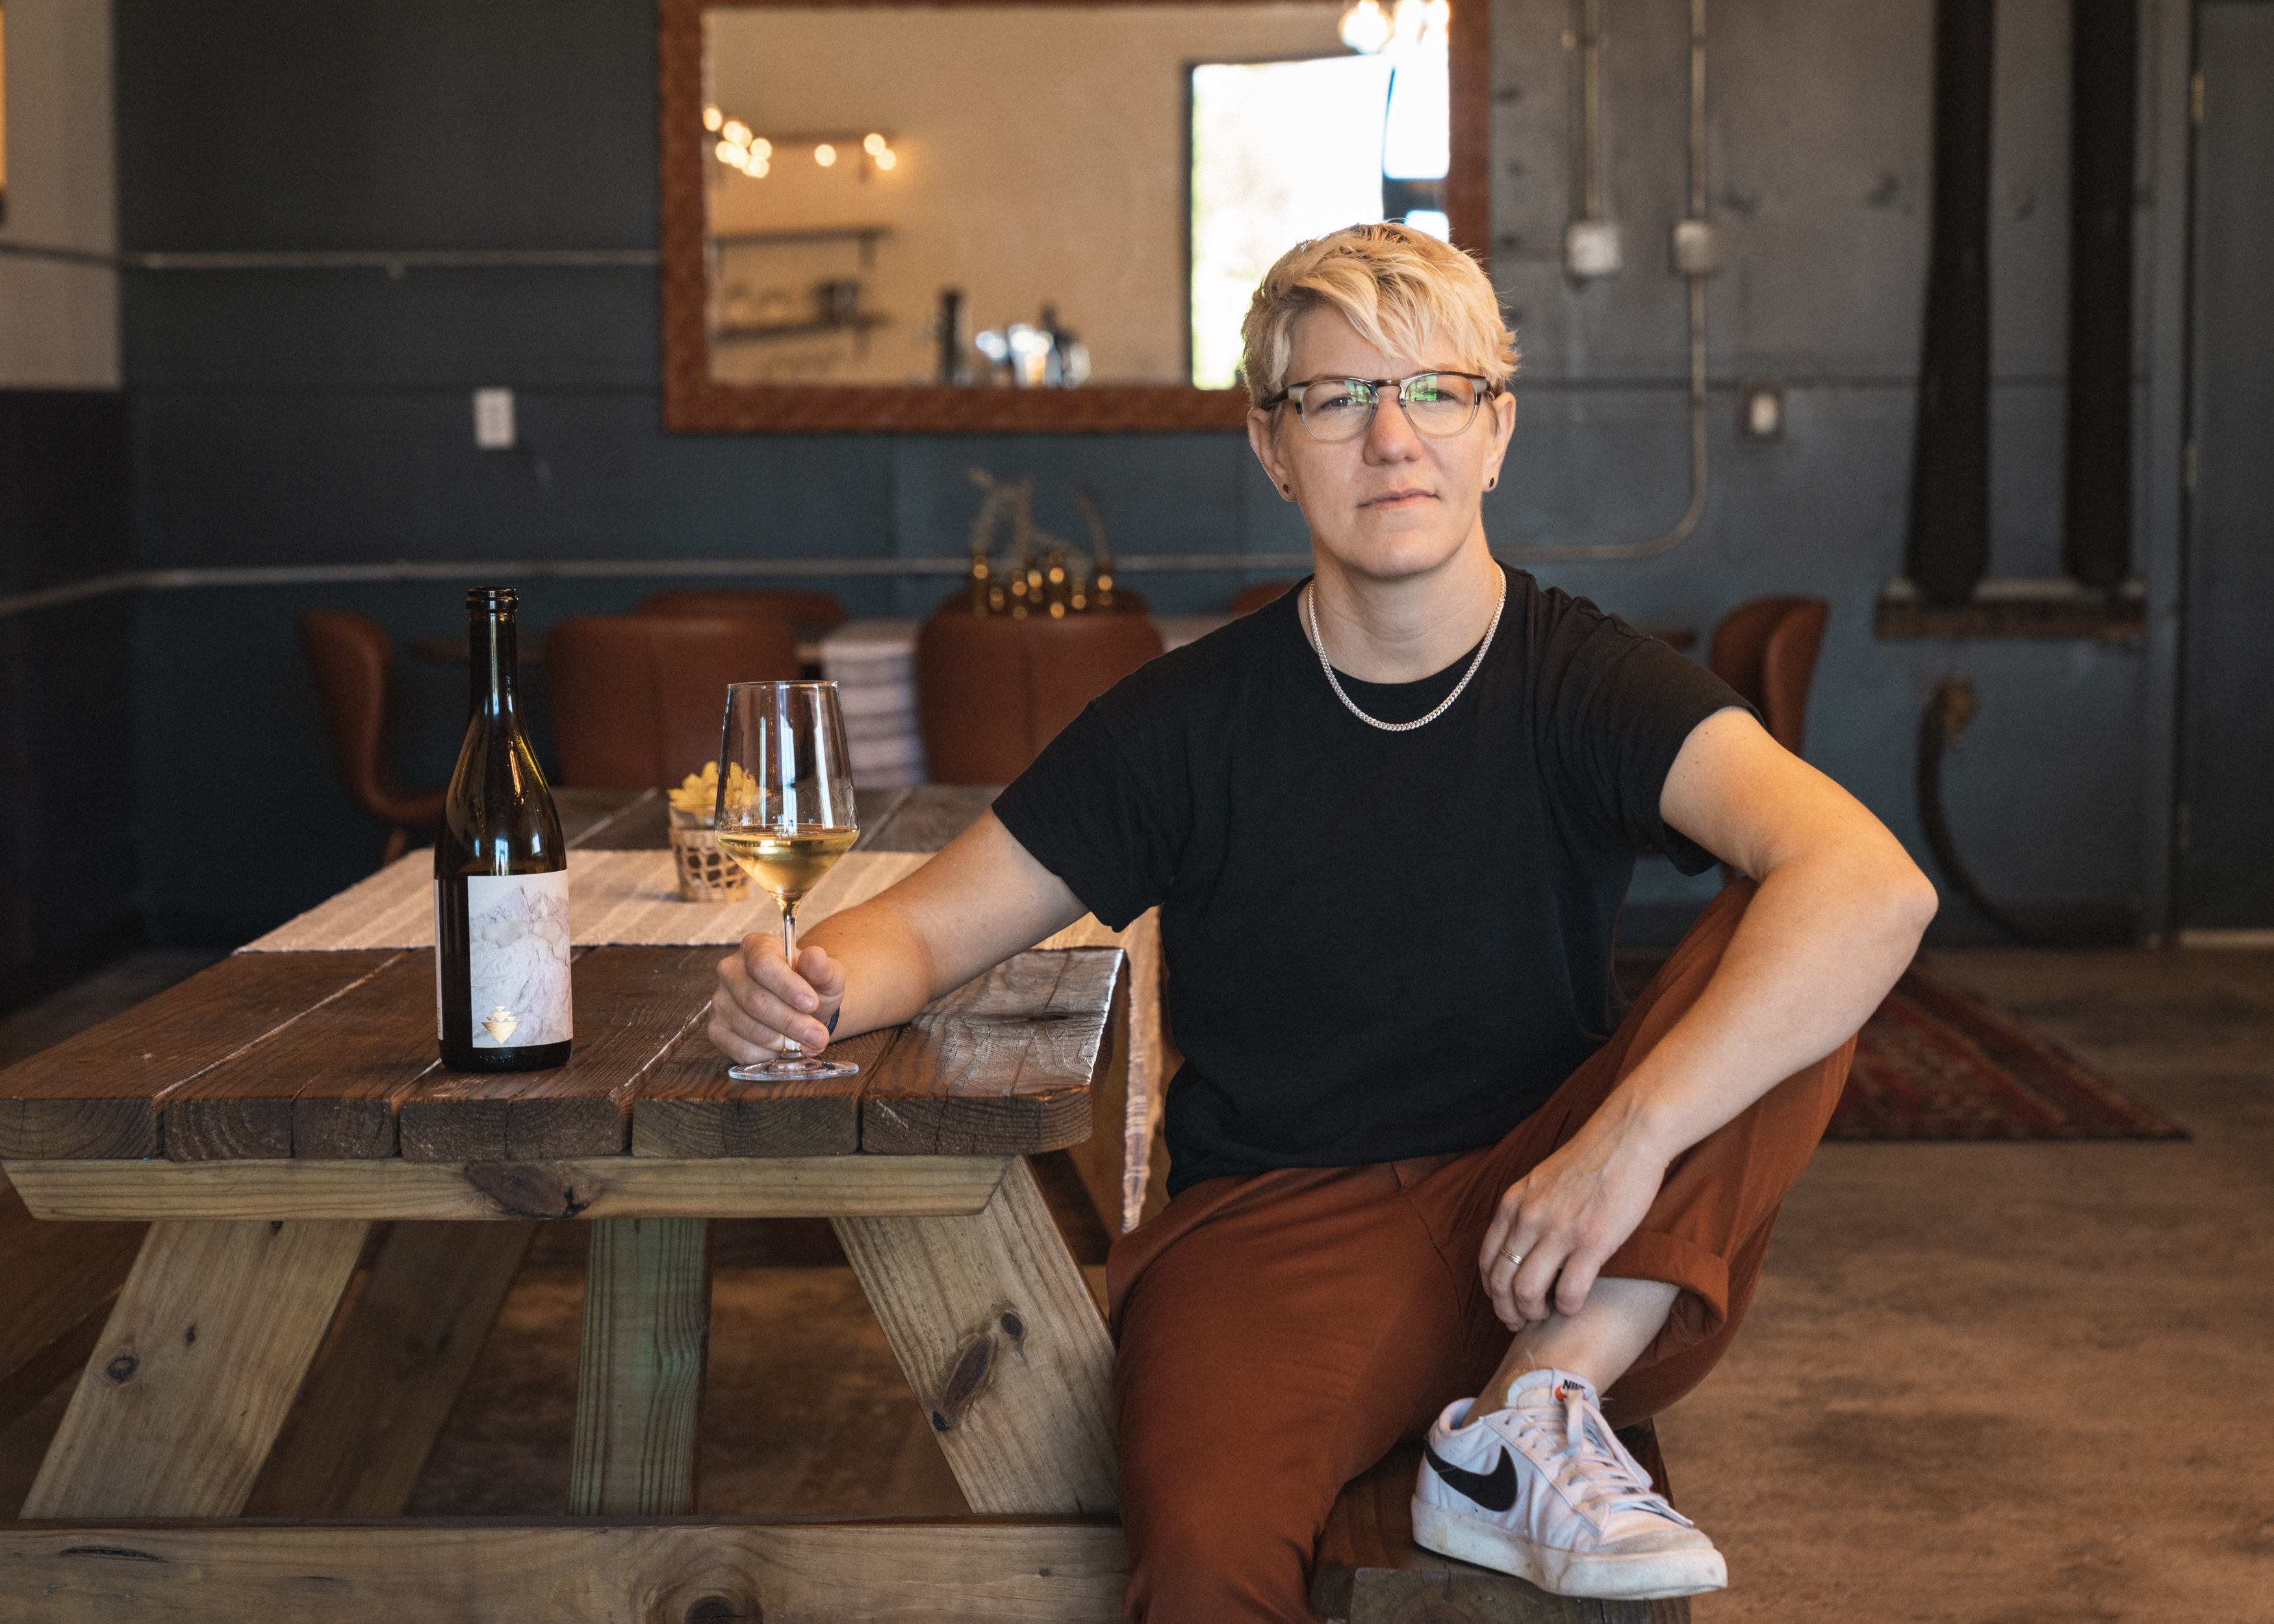 A woman with short blonde hair wearing a black T-shirt and brown pants sitting at an indoor picnic table with one foot on the seat, while holding a glass of white wine on the table near a bottle of wine.